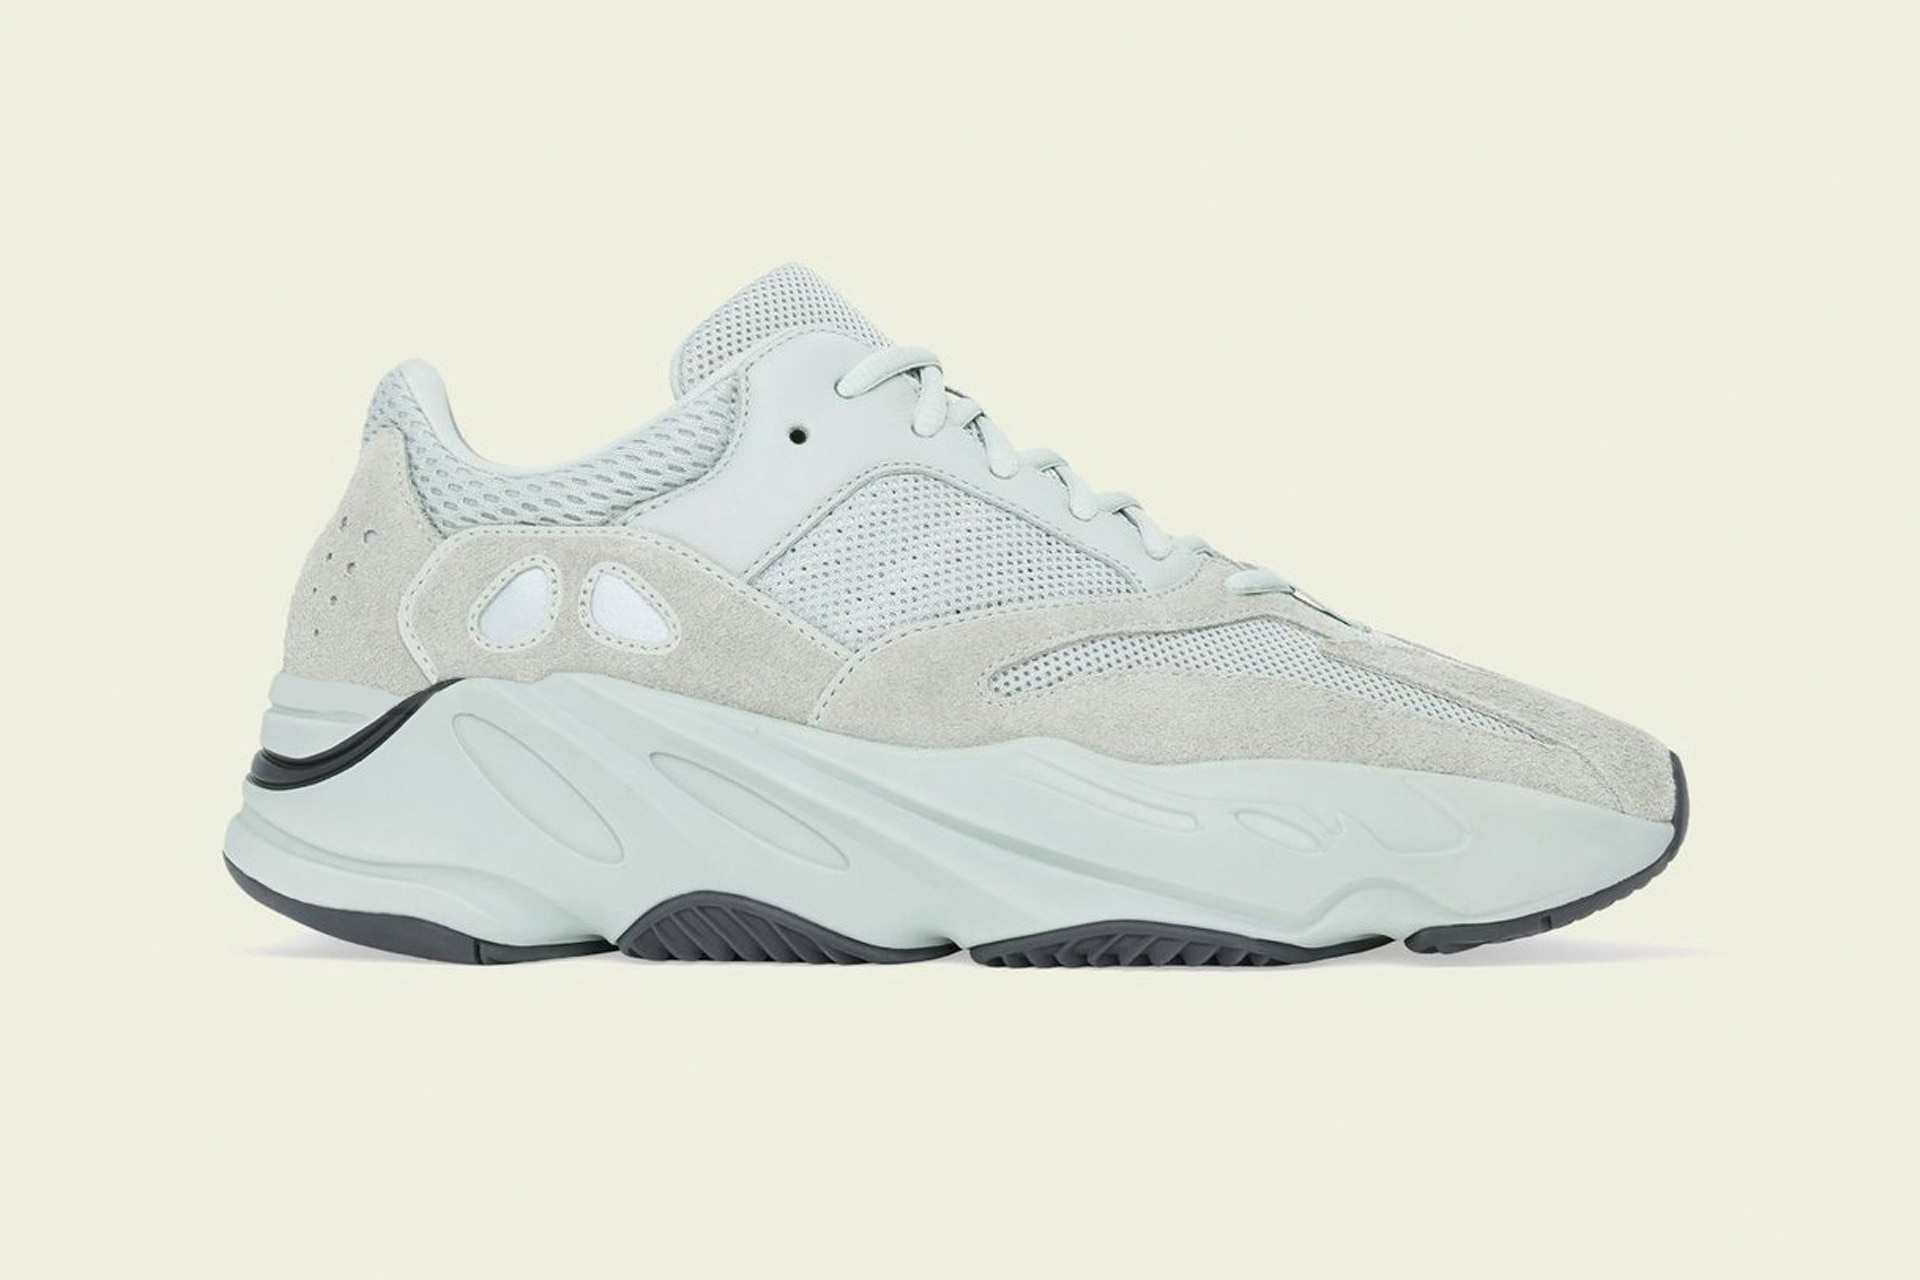 timeless design 7c196 085a0 Everywhere In Australia You Can Cop The Upcoming YEEZY 700 ...